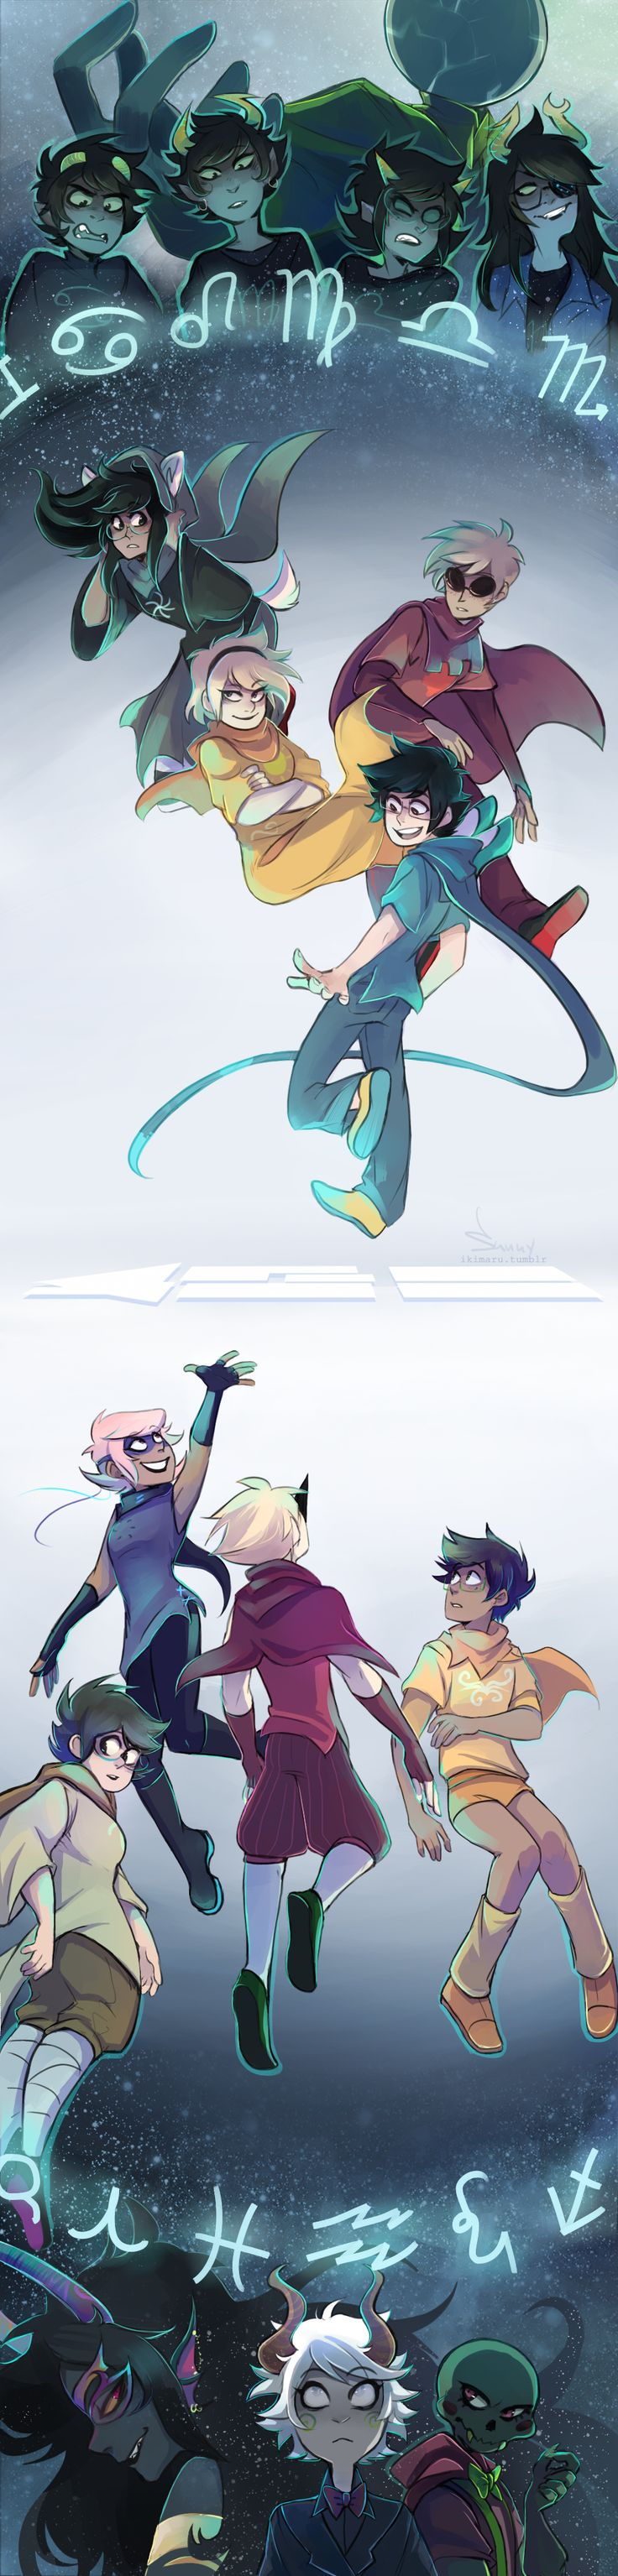 413_2015 - and so I guess here we are this year too 8′) Art by http://ikimaru.tumblr.com/